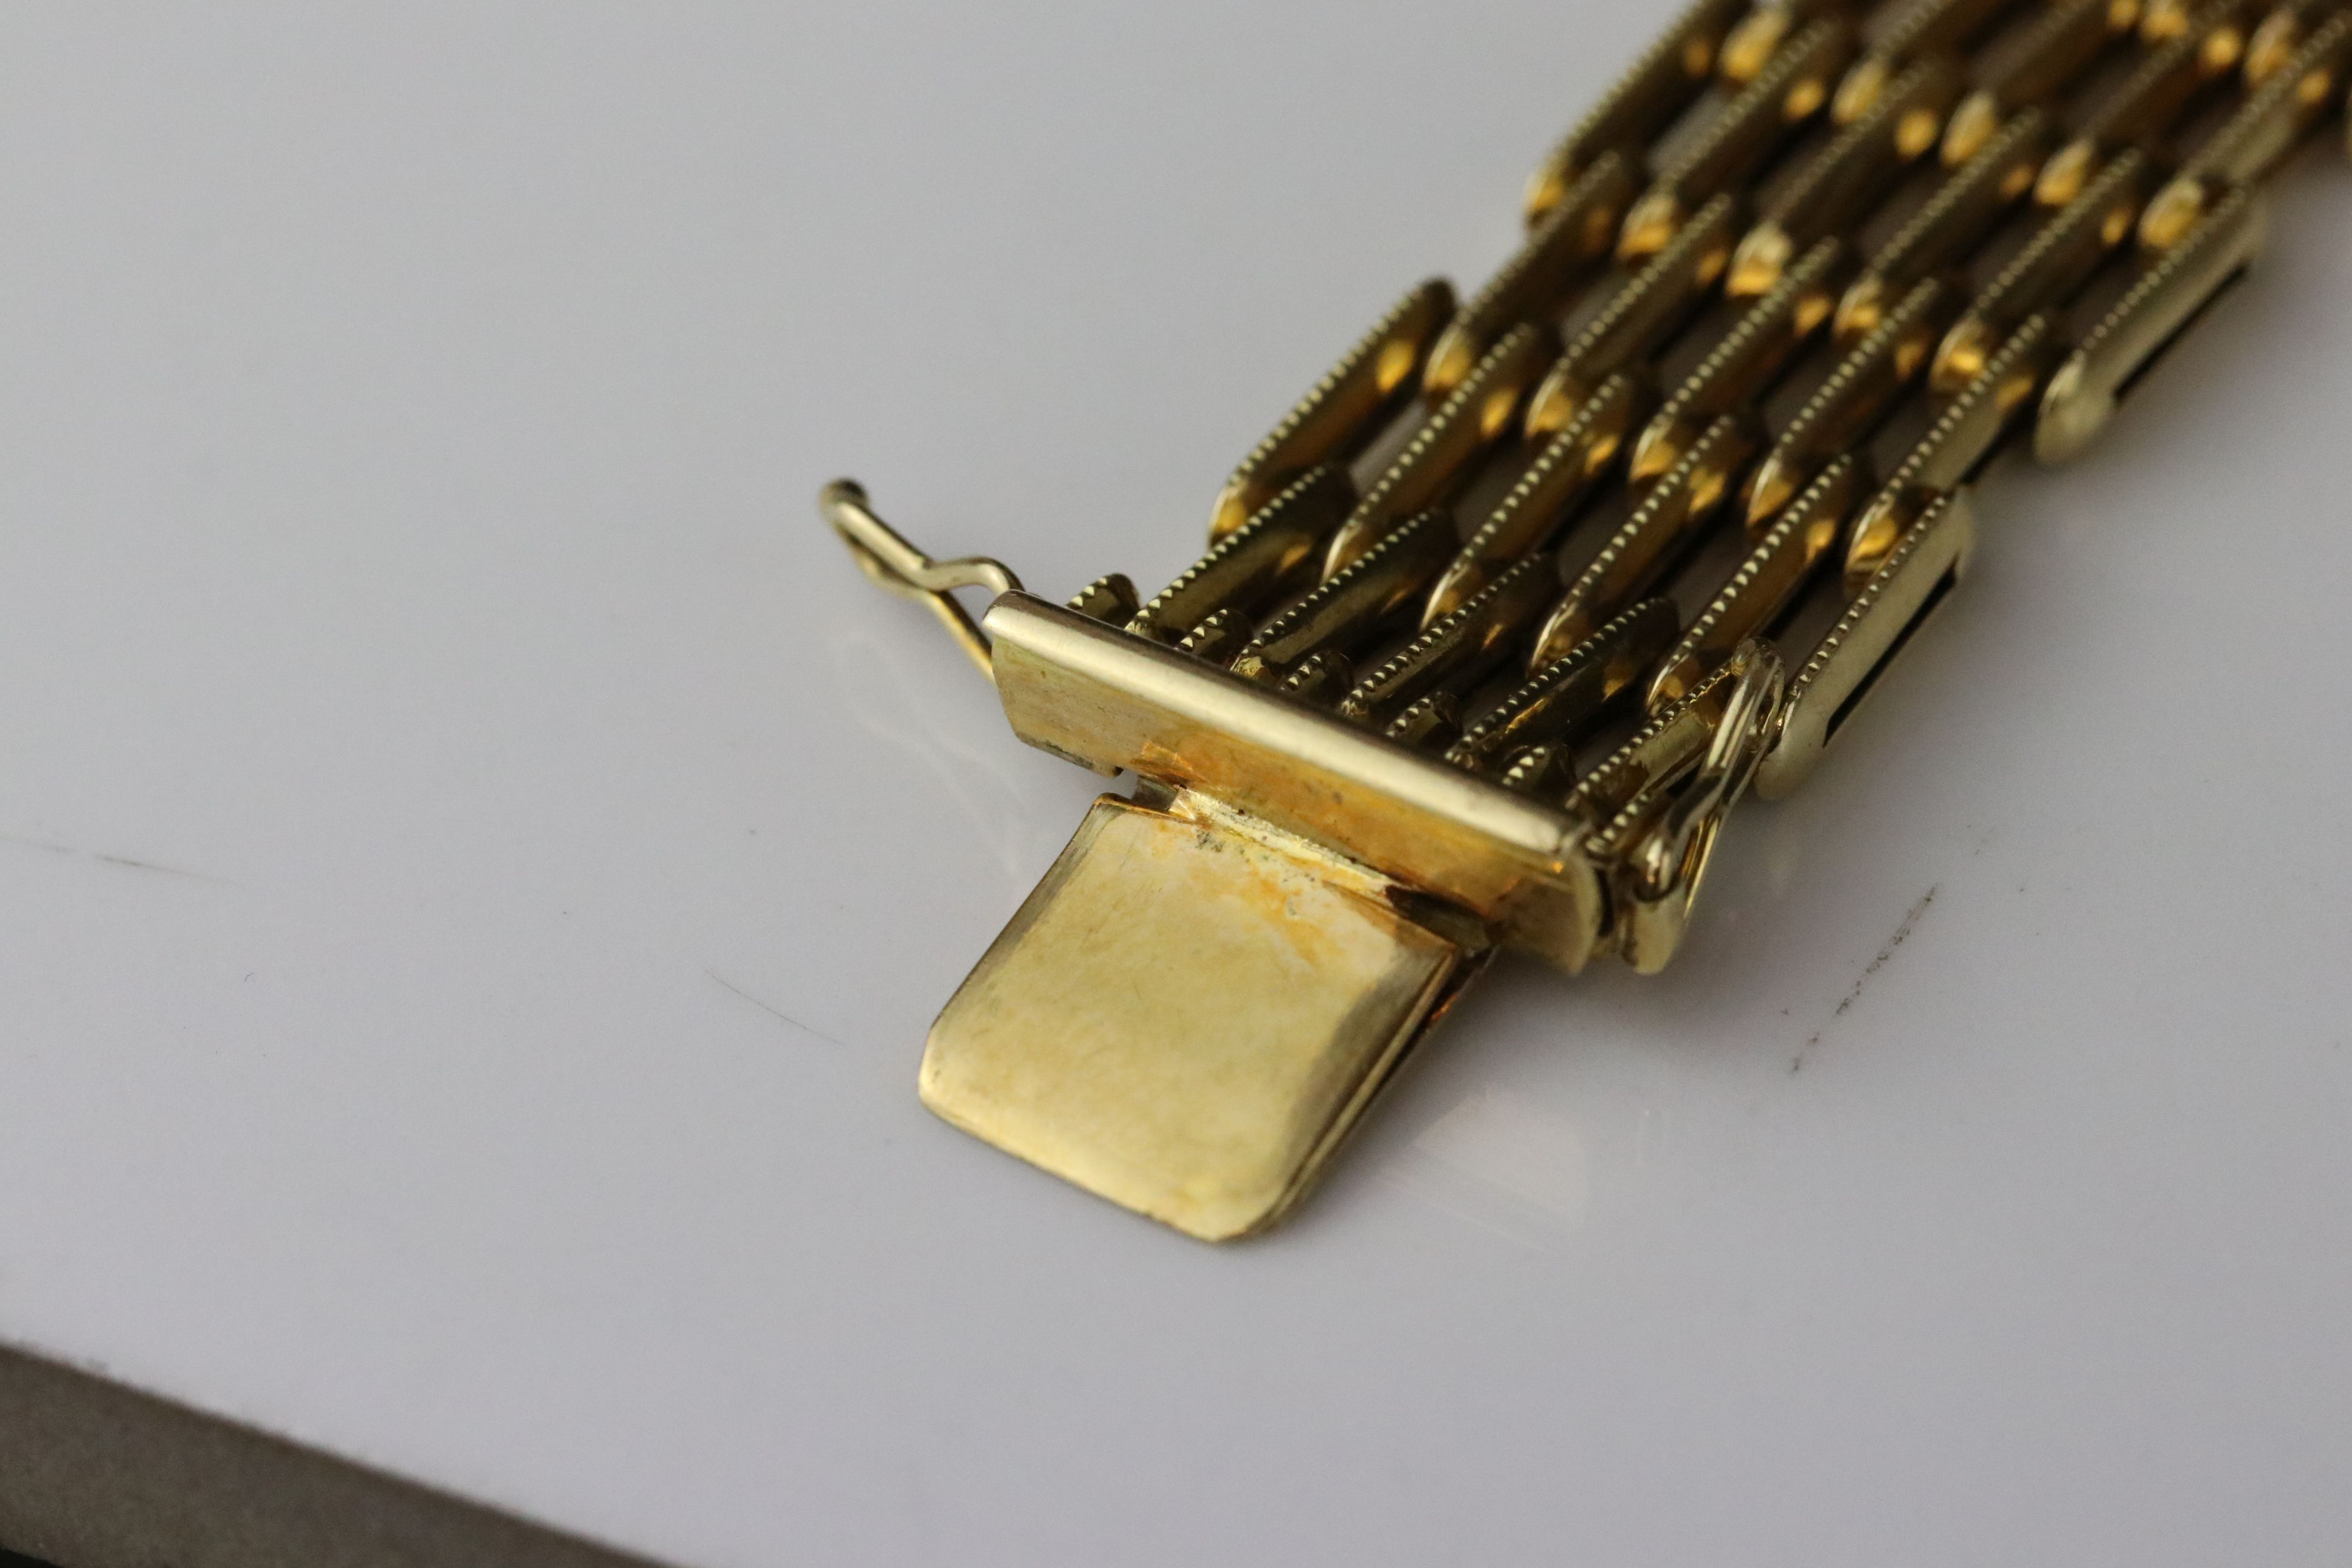 18ct yellow gold gate link style bracelet, tongue and box clasp, length approx 19cm - Image 5 of 5